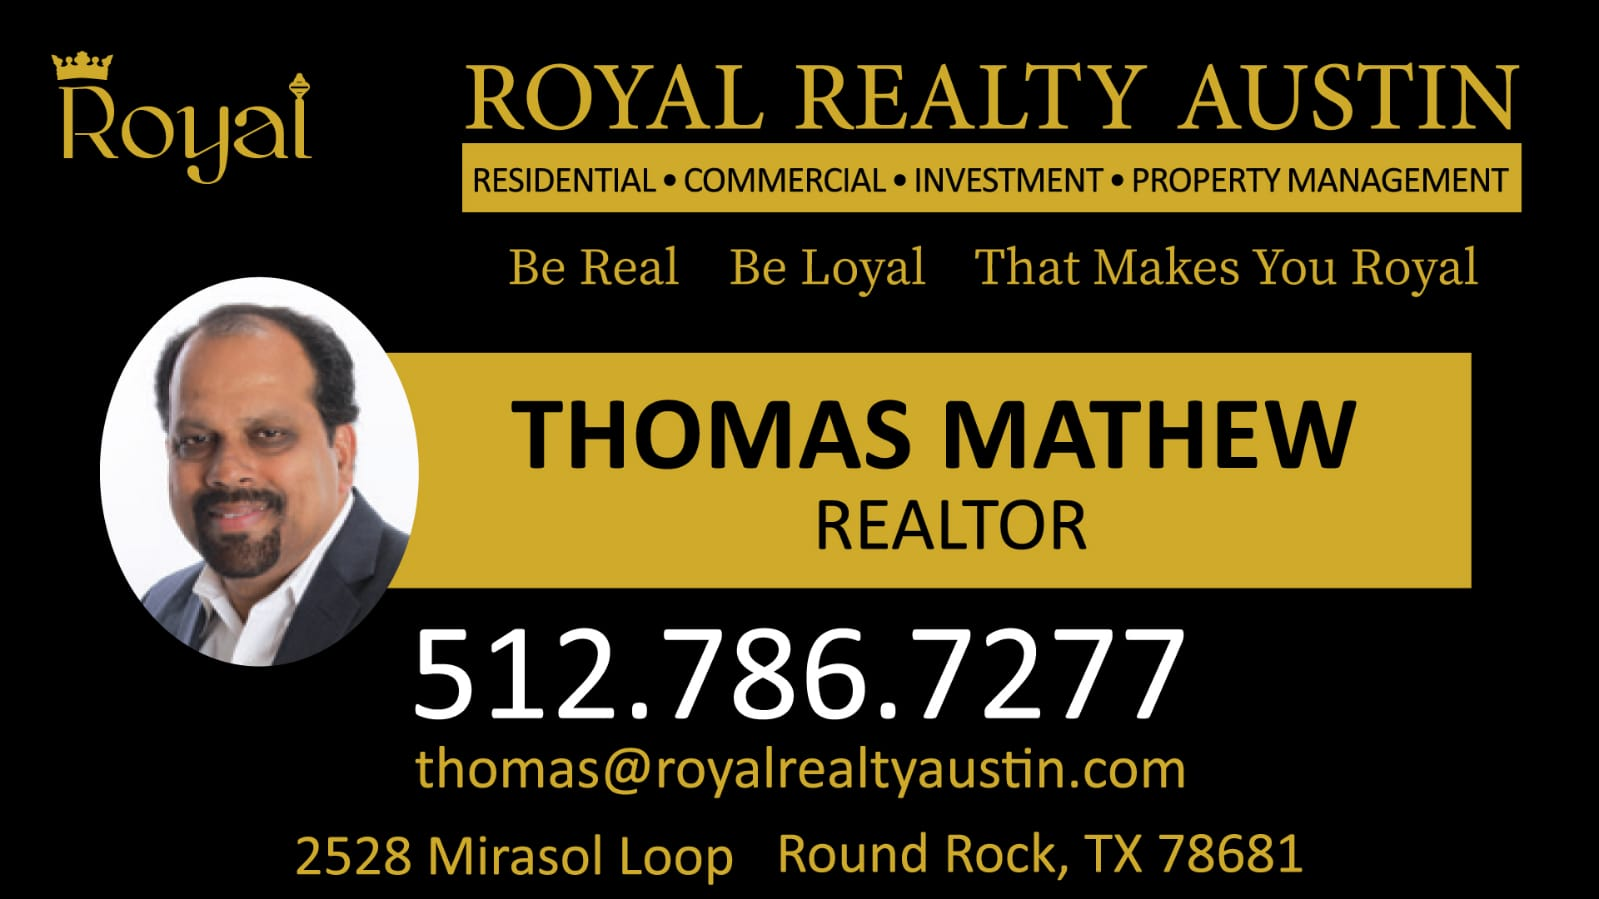 Royal Realty Austin